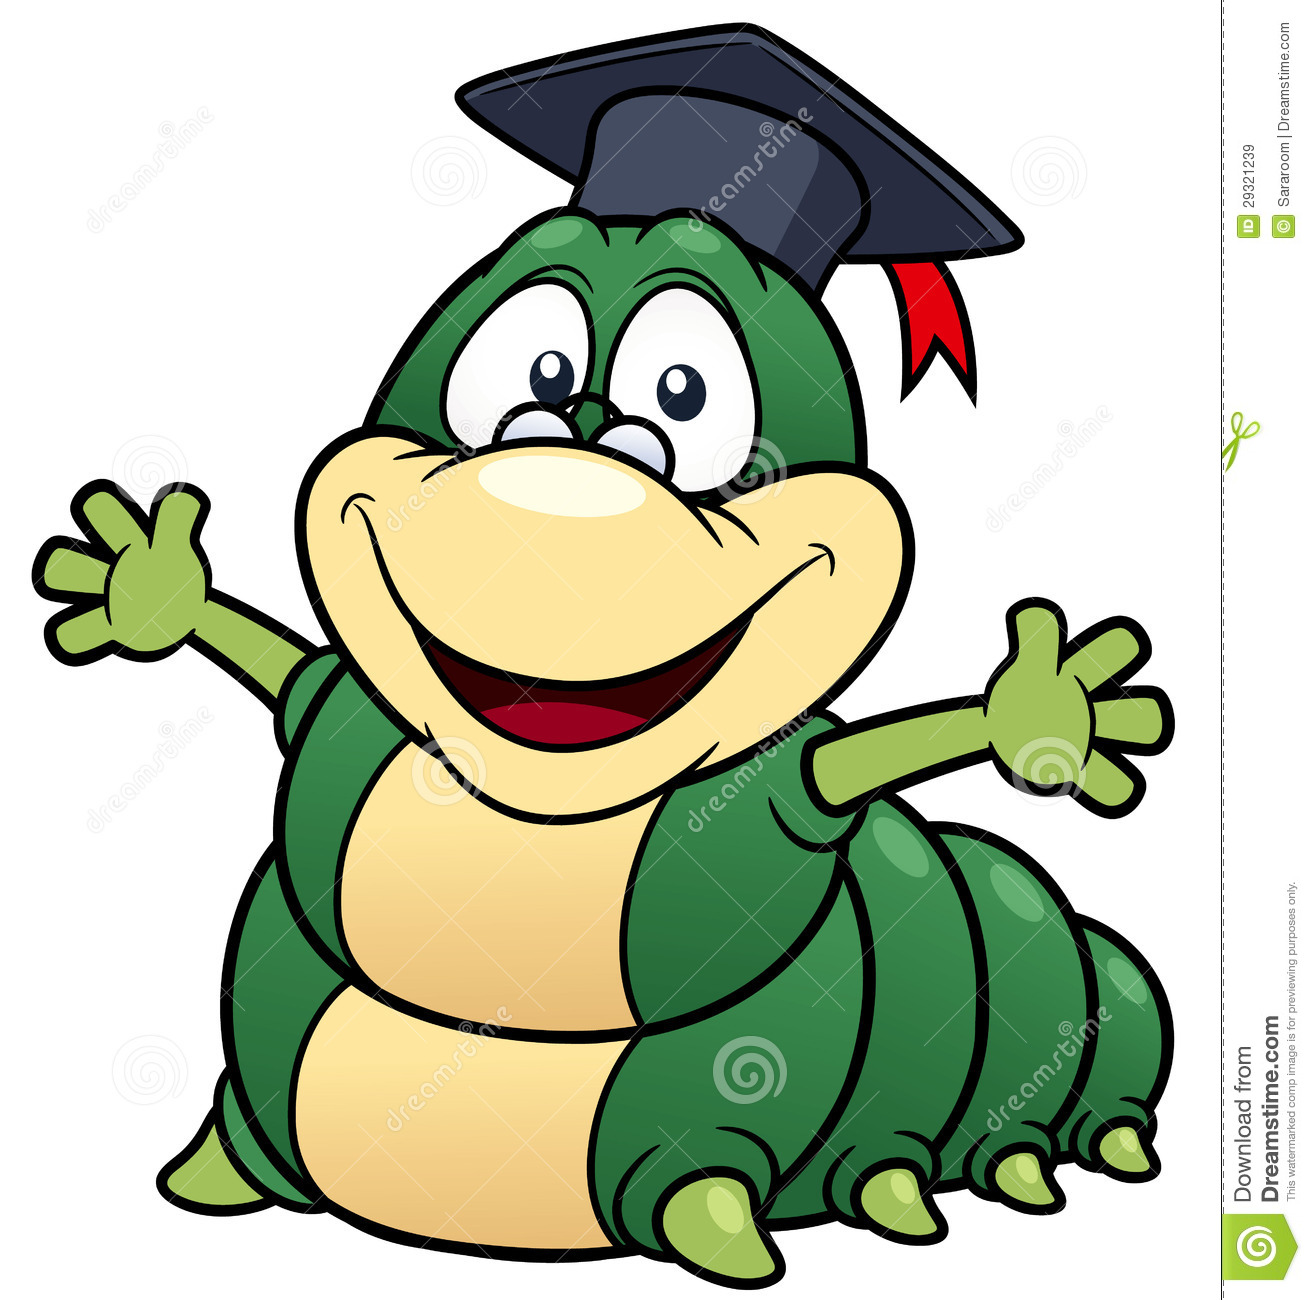 Cartoon Worm Professor Royalty Free Stock Images - Image: 29321239